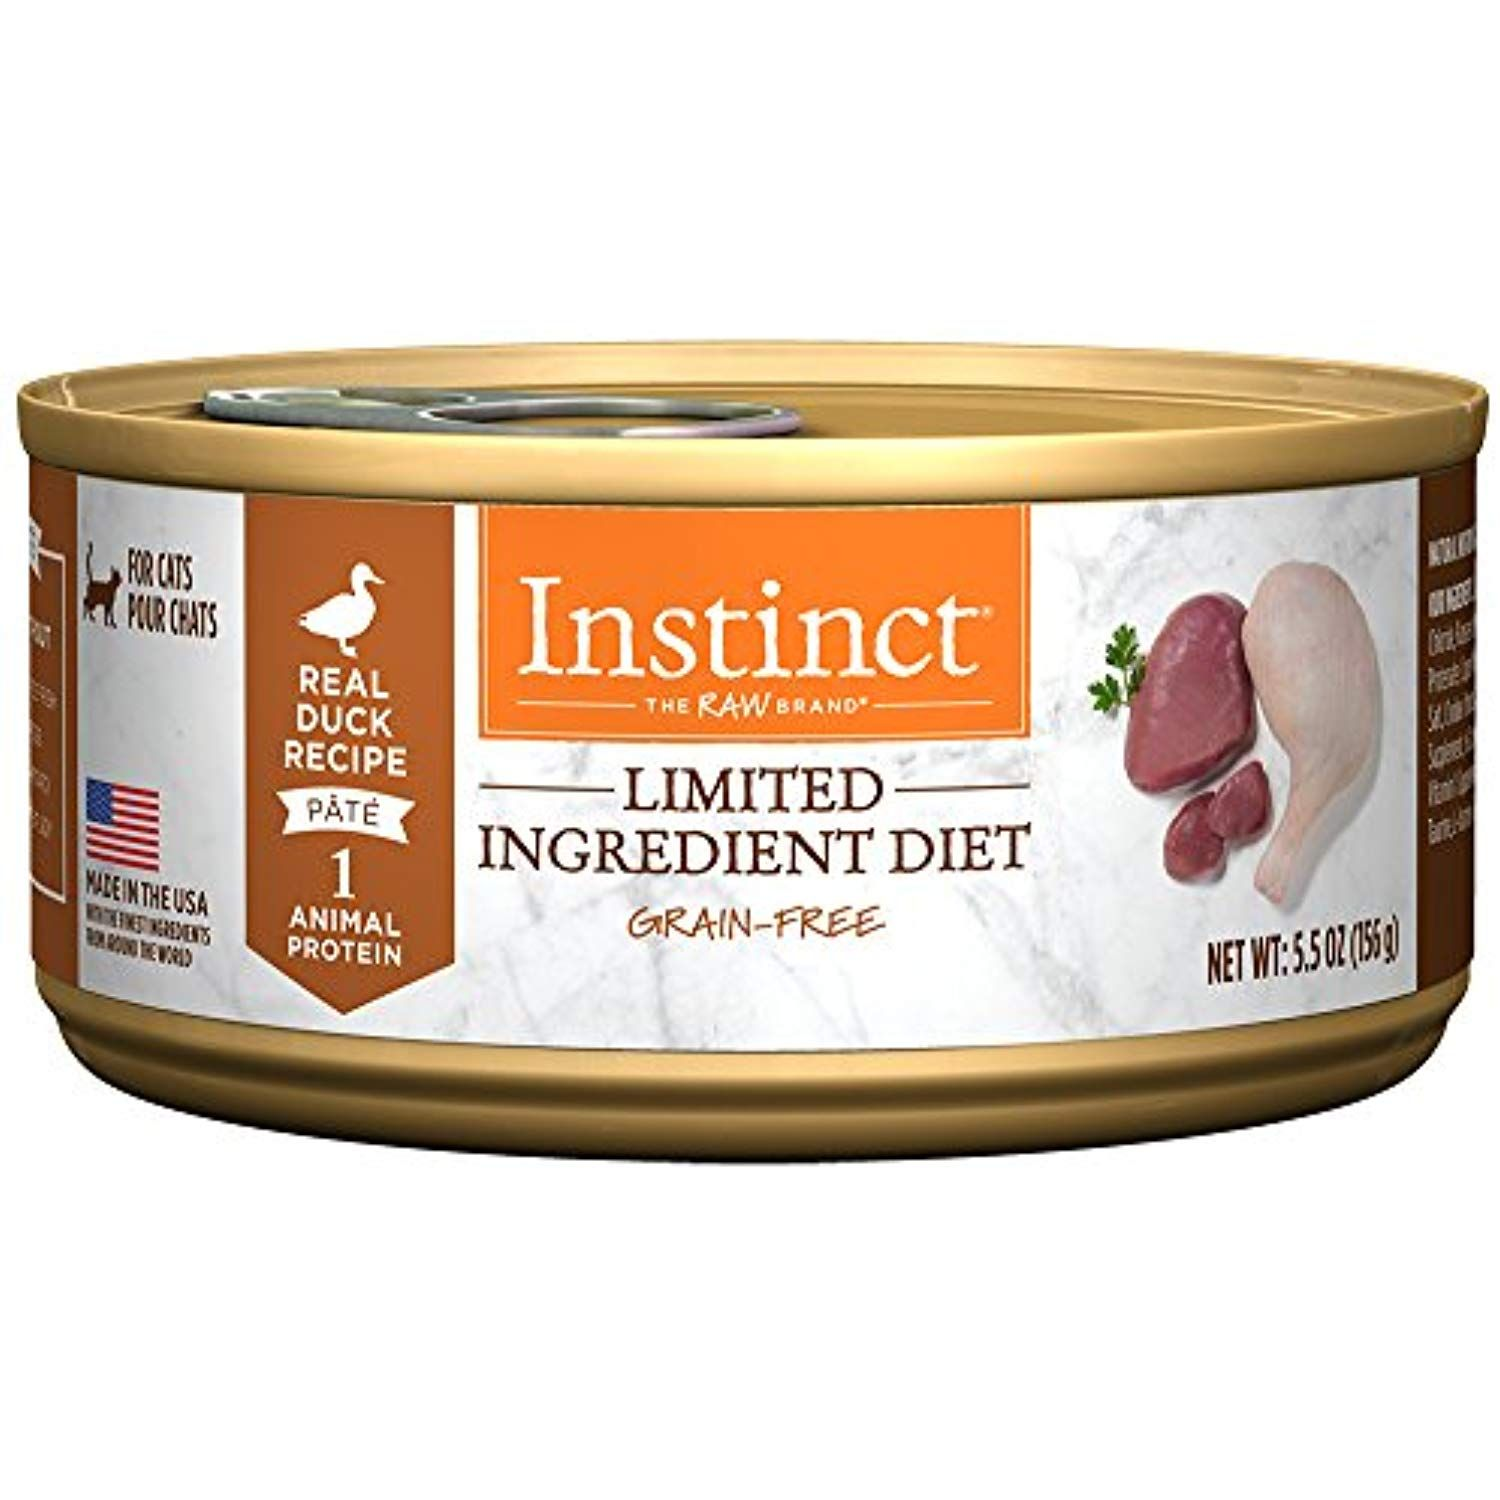 Instinct Limited Ingredient Diet Grain Free Real Duck